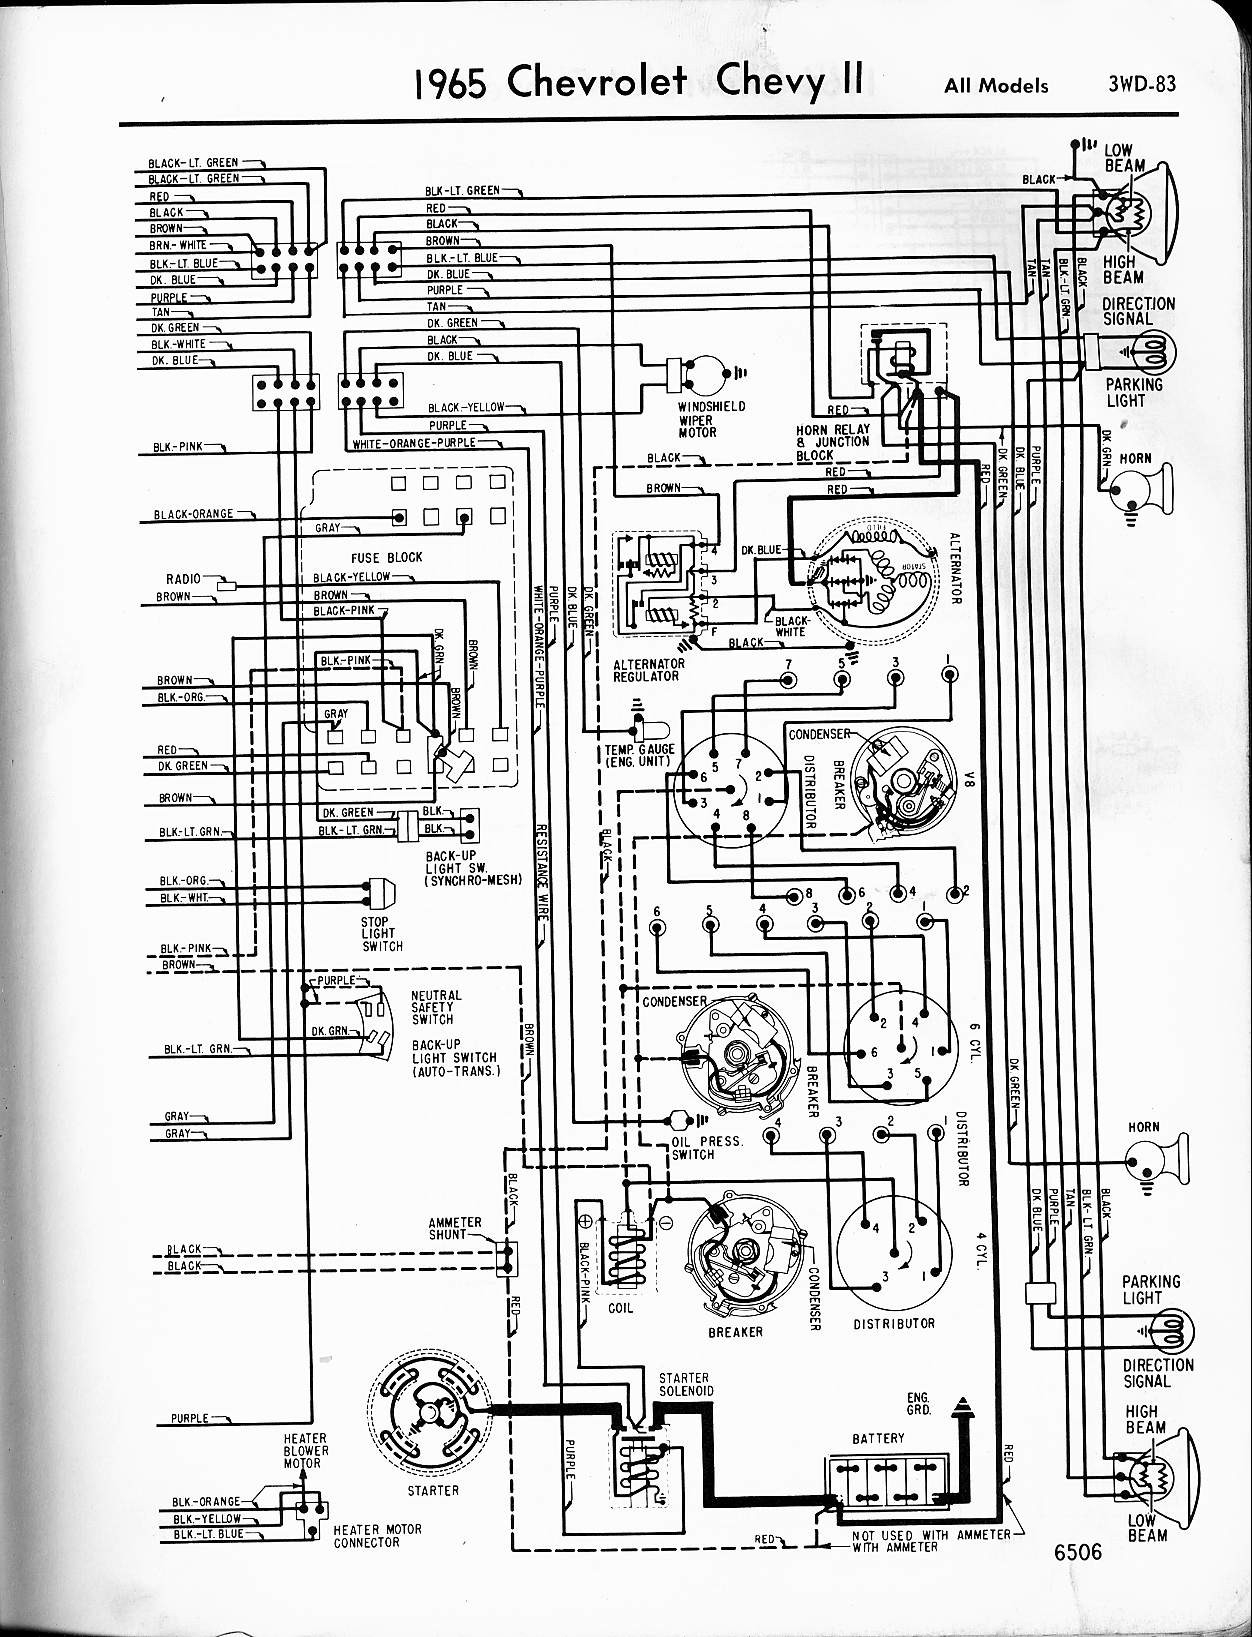 1963 chevy pickup wiring harness data wiring diagrams u2022 rh mikeadkinsguitar com